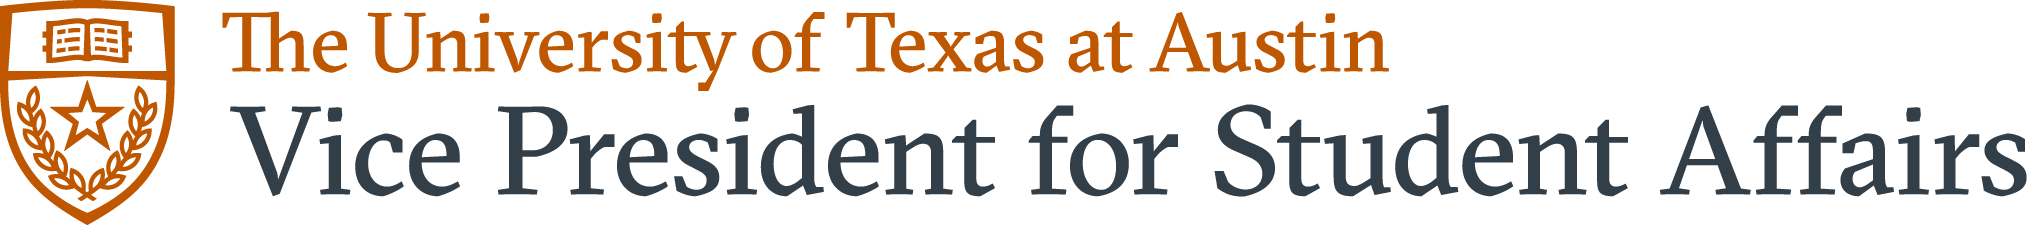 Vice President for Student Affairs logo